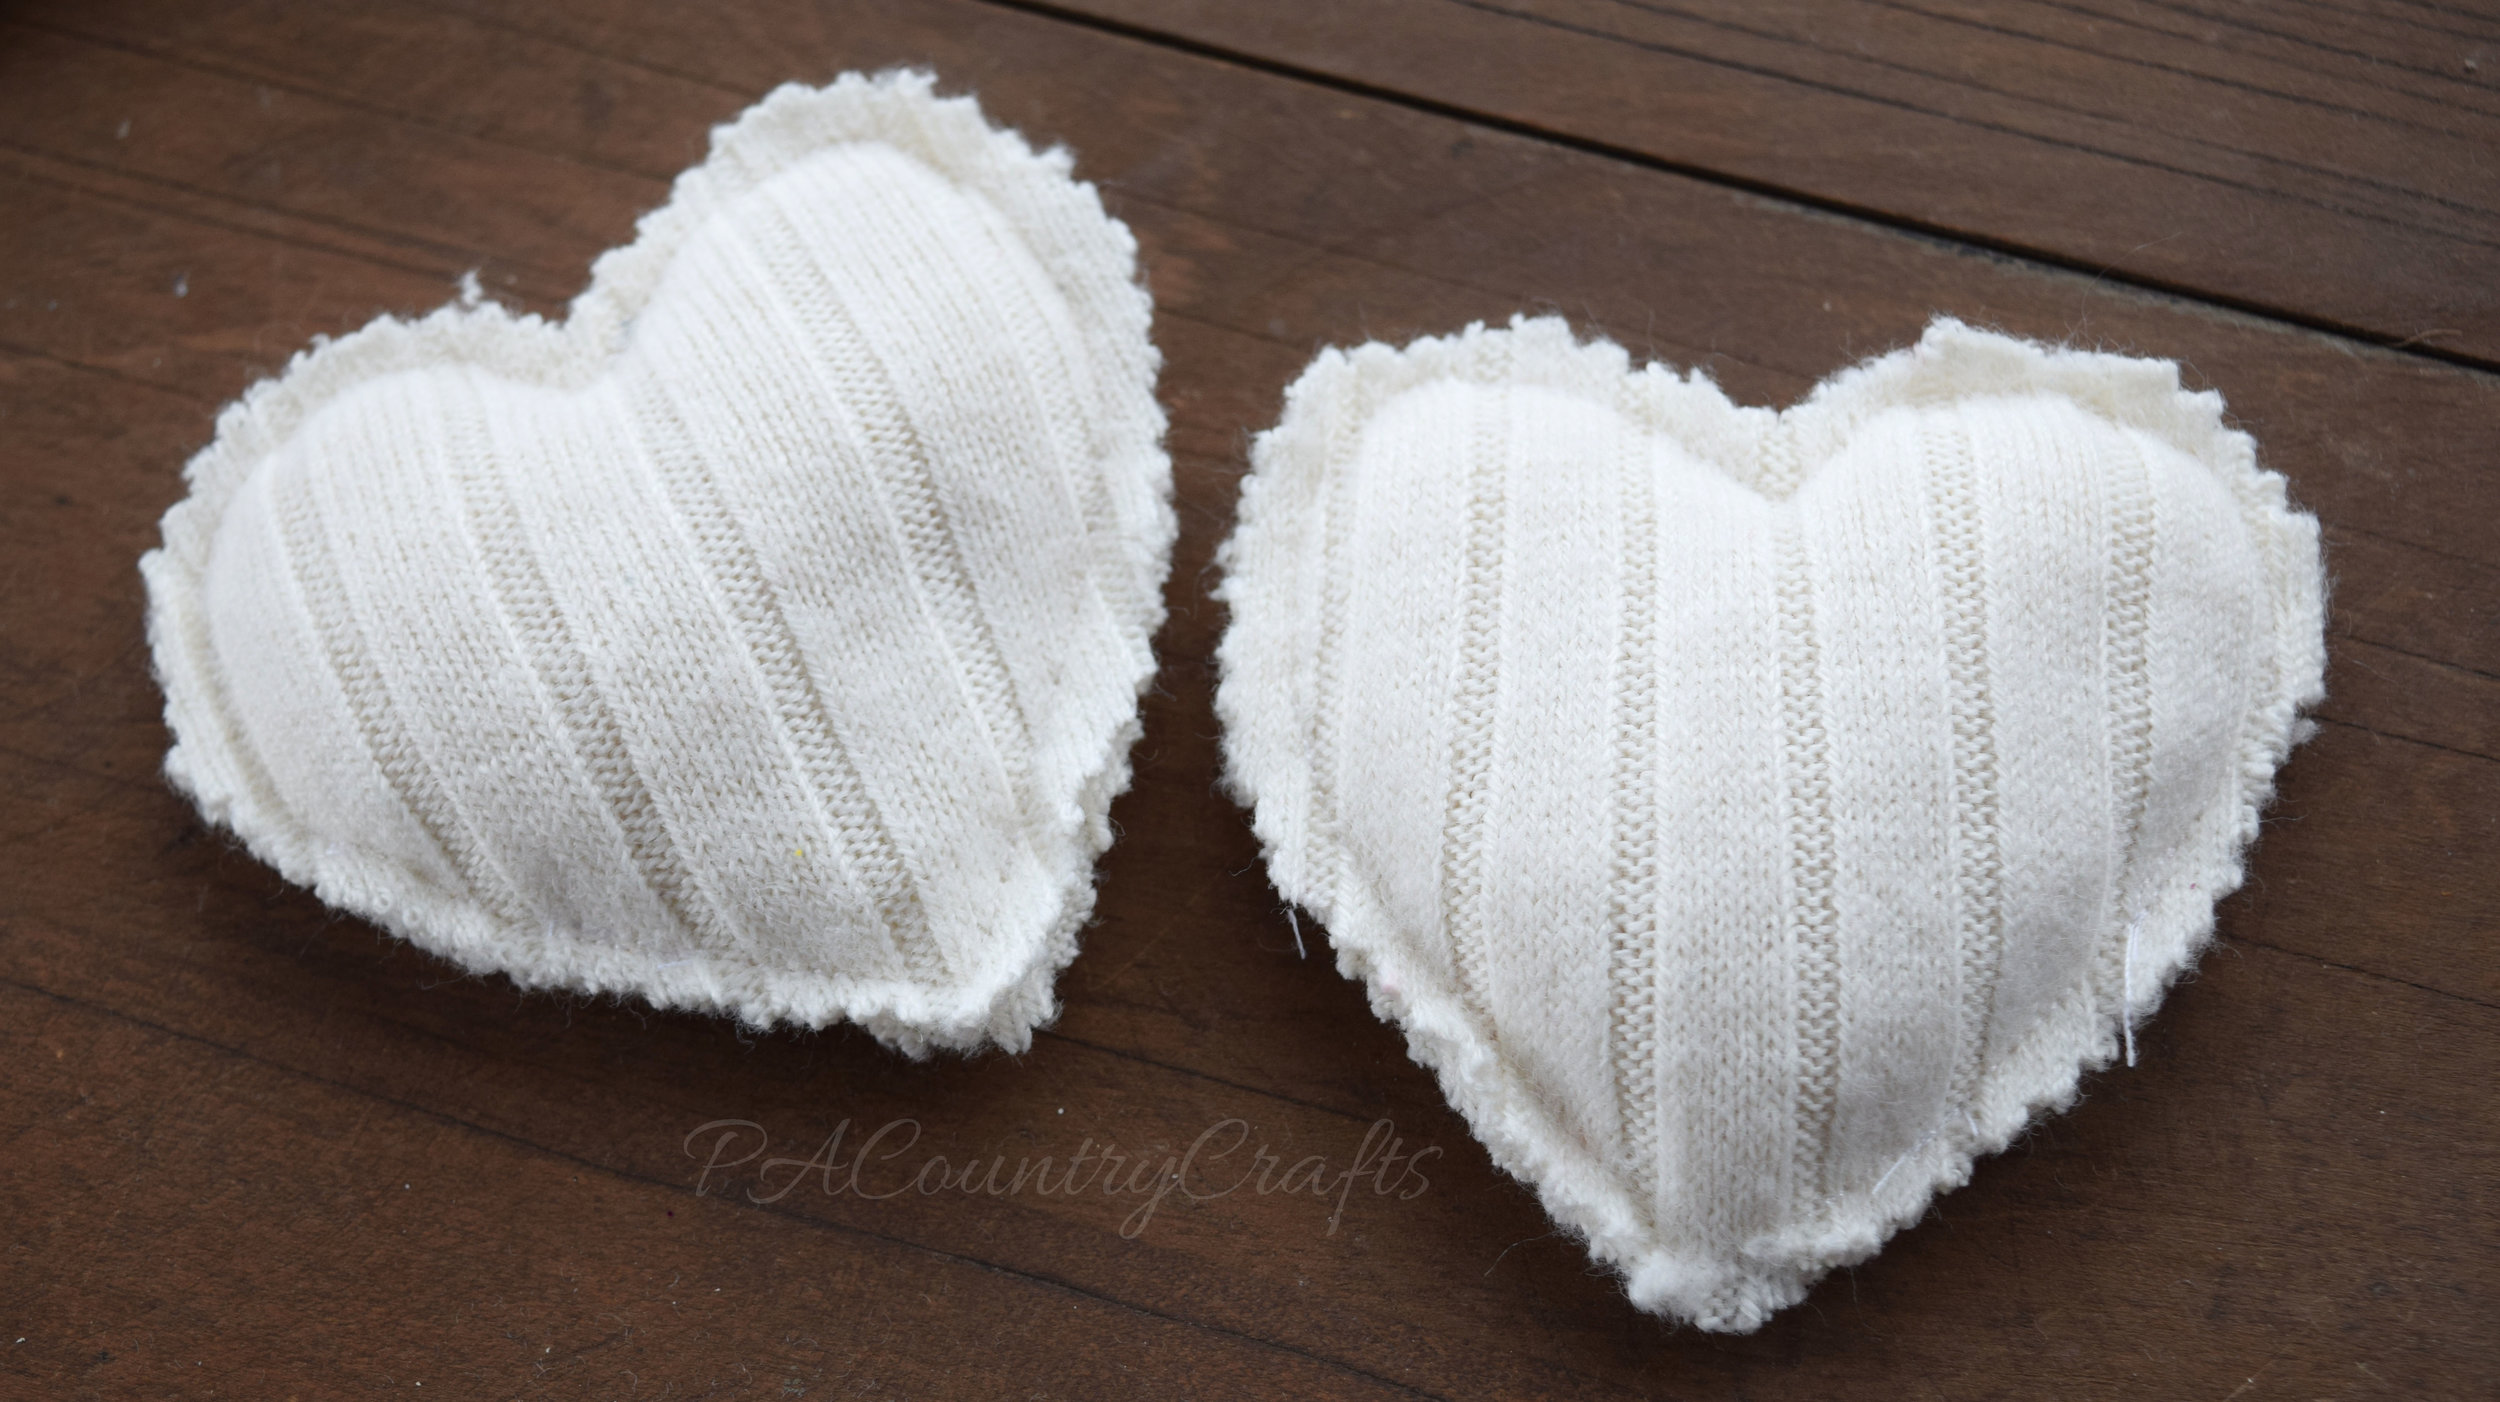 I love these soft hand warmers made from old sweater sleeves!